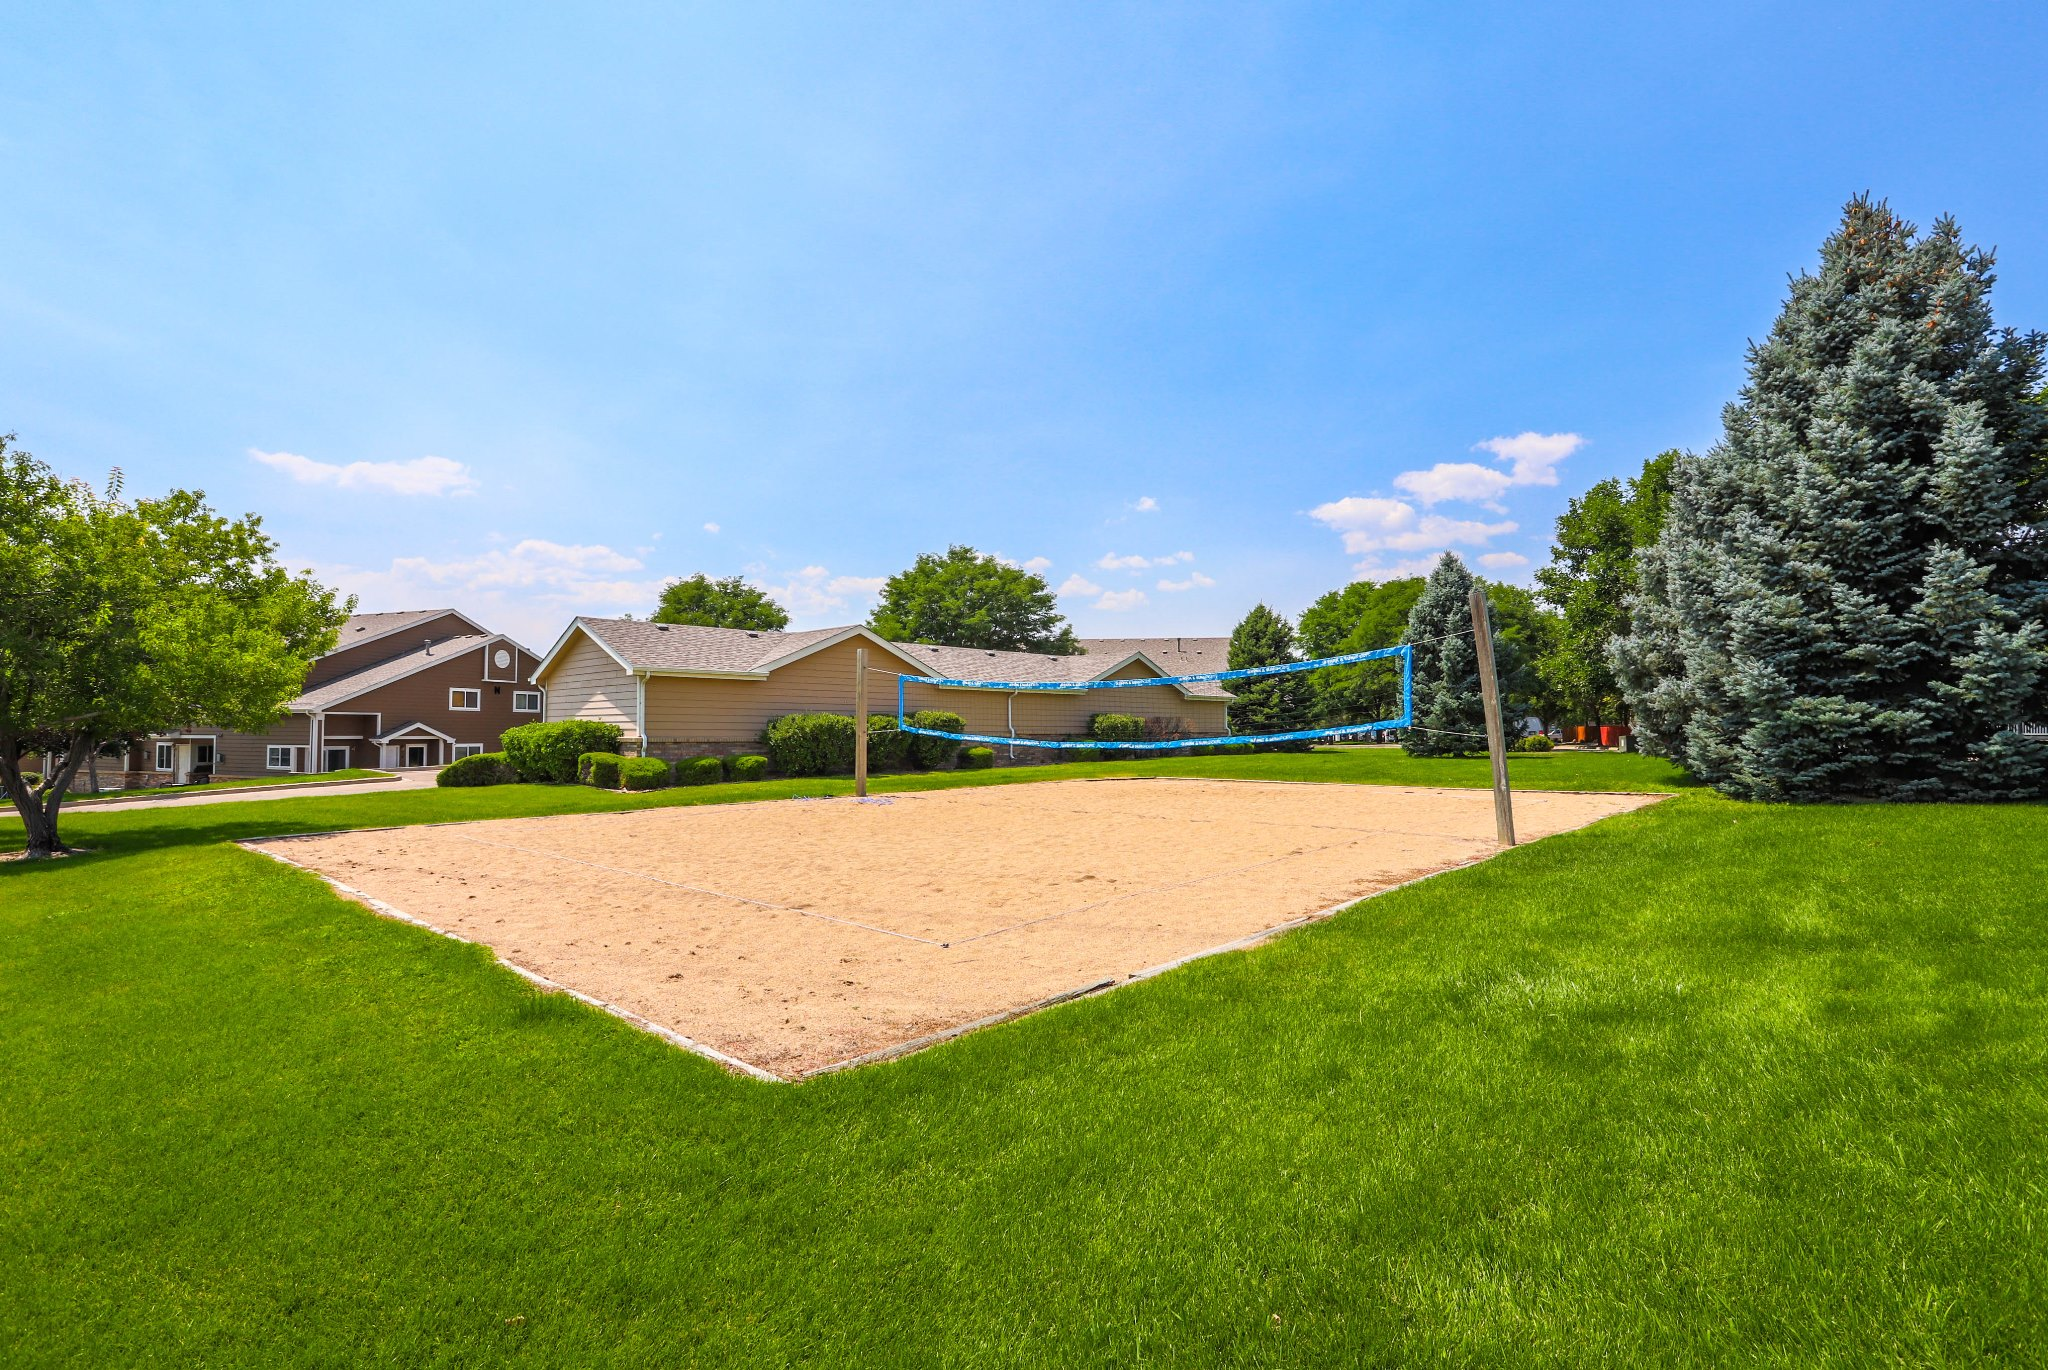 REAL ESTATE LISTING: 1601 Great Western Dr Longmont Community Sand Volleyball